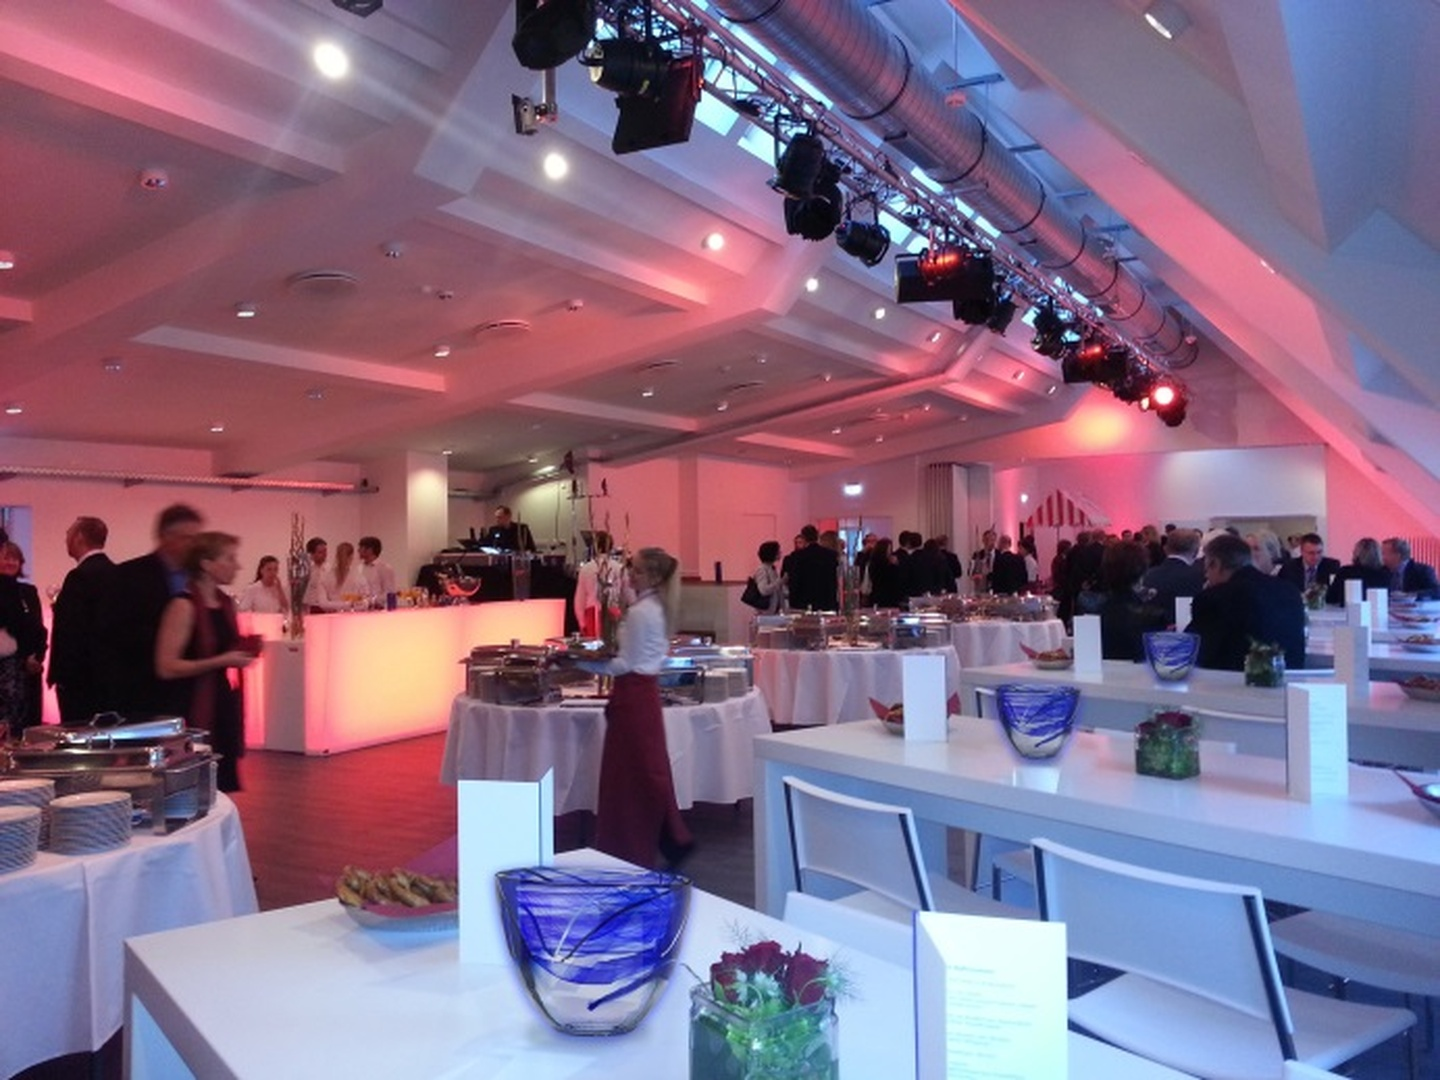 Berlin corporate event venues Rooftop Sky Live Club image 11